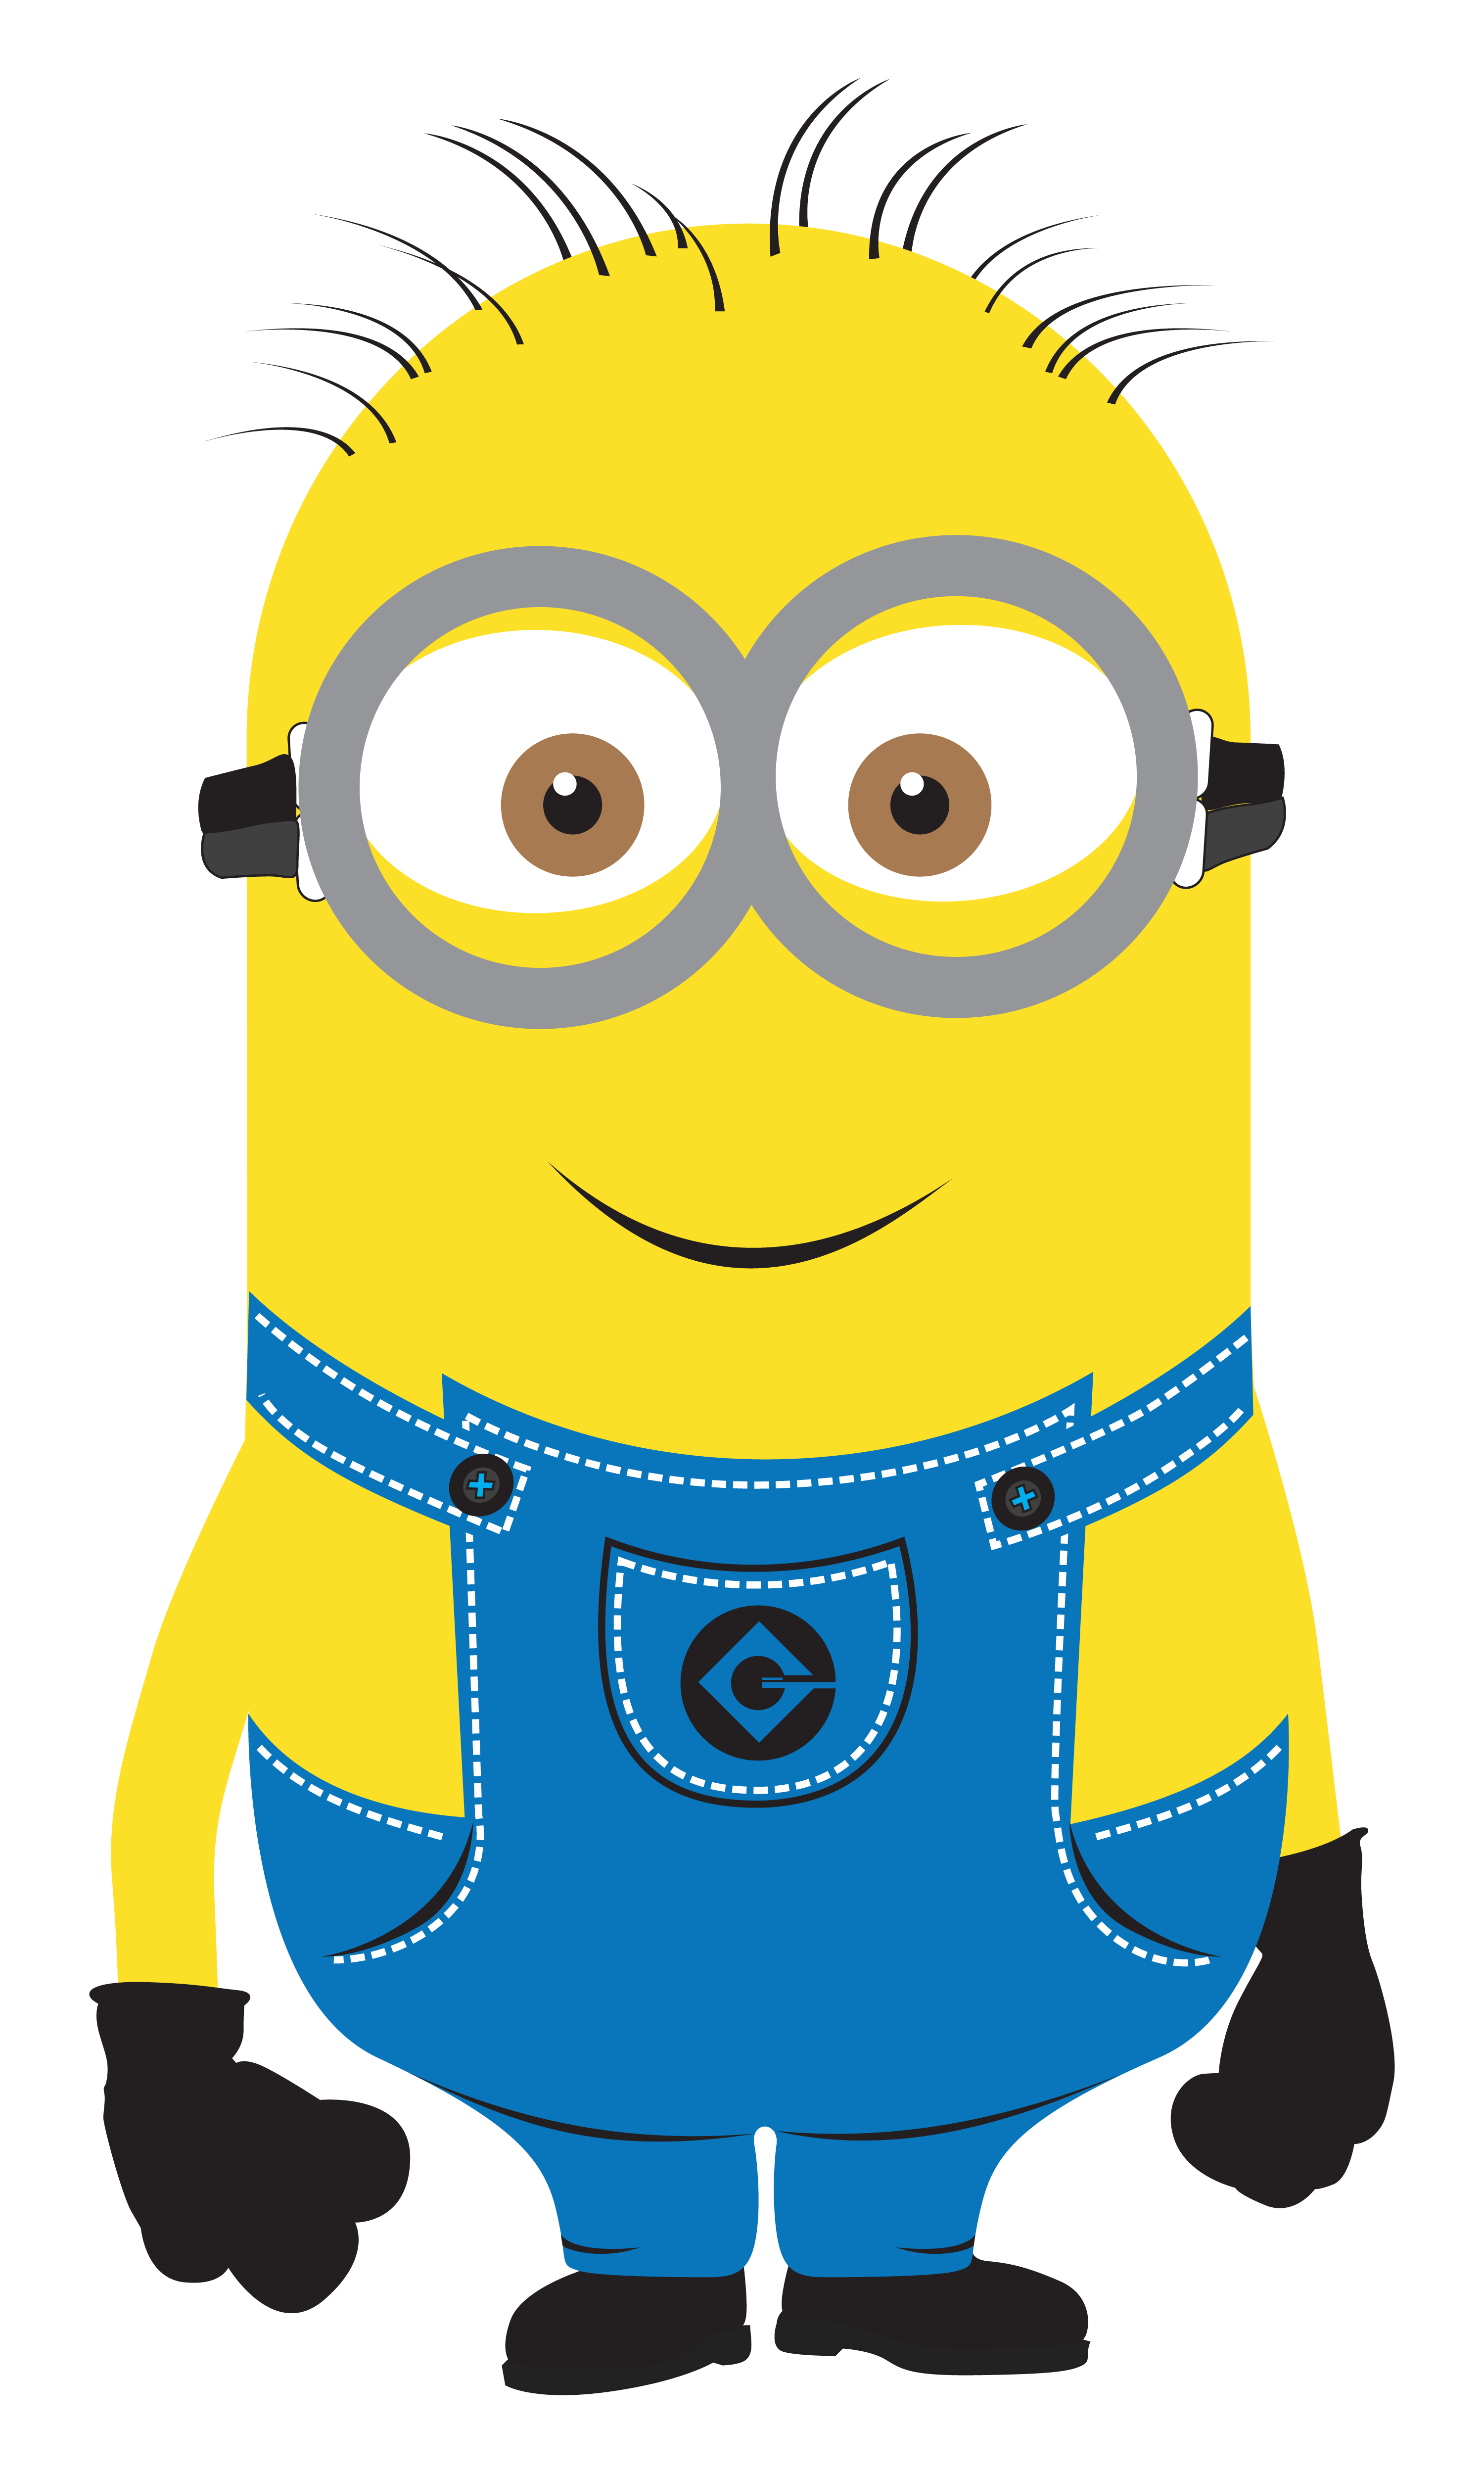 freeuse Free minion cliparts download. Vector meme despicable.